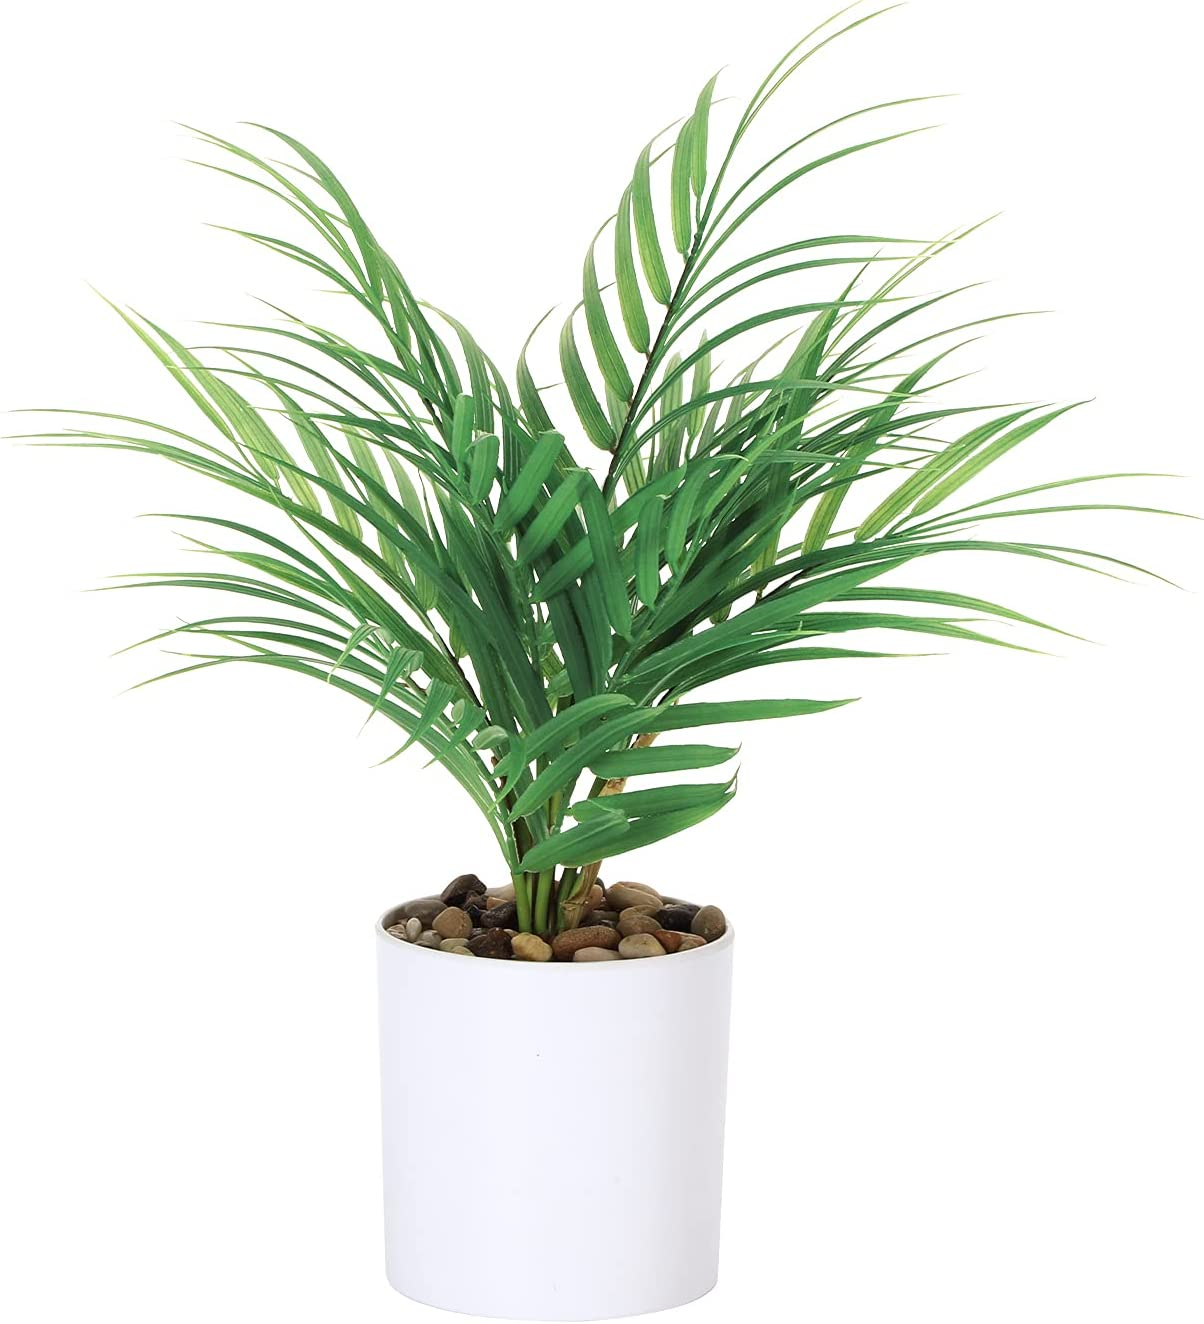 Fake Plants Small Artificial Paradise Tree Palm Max 55% OFF Indoor Greenery Max 67% OFF